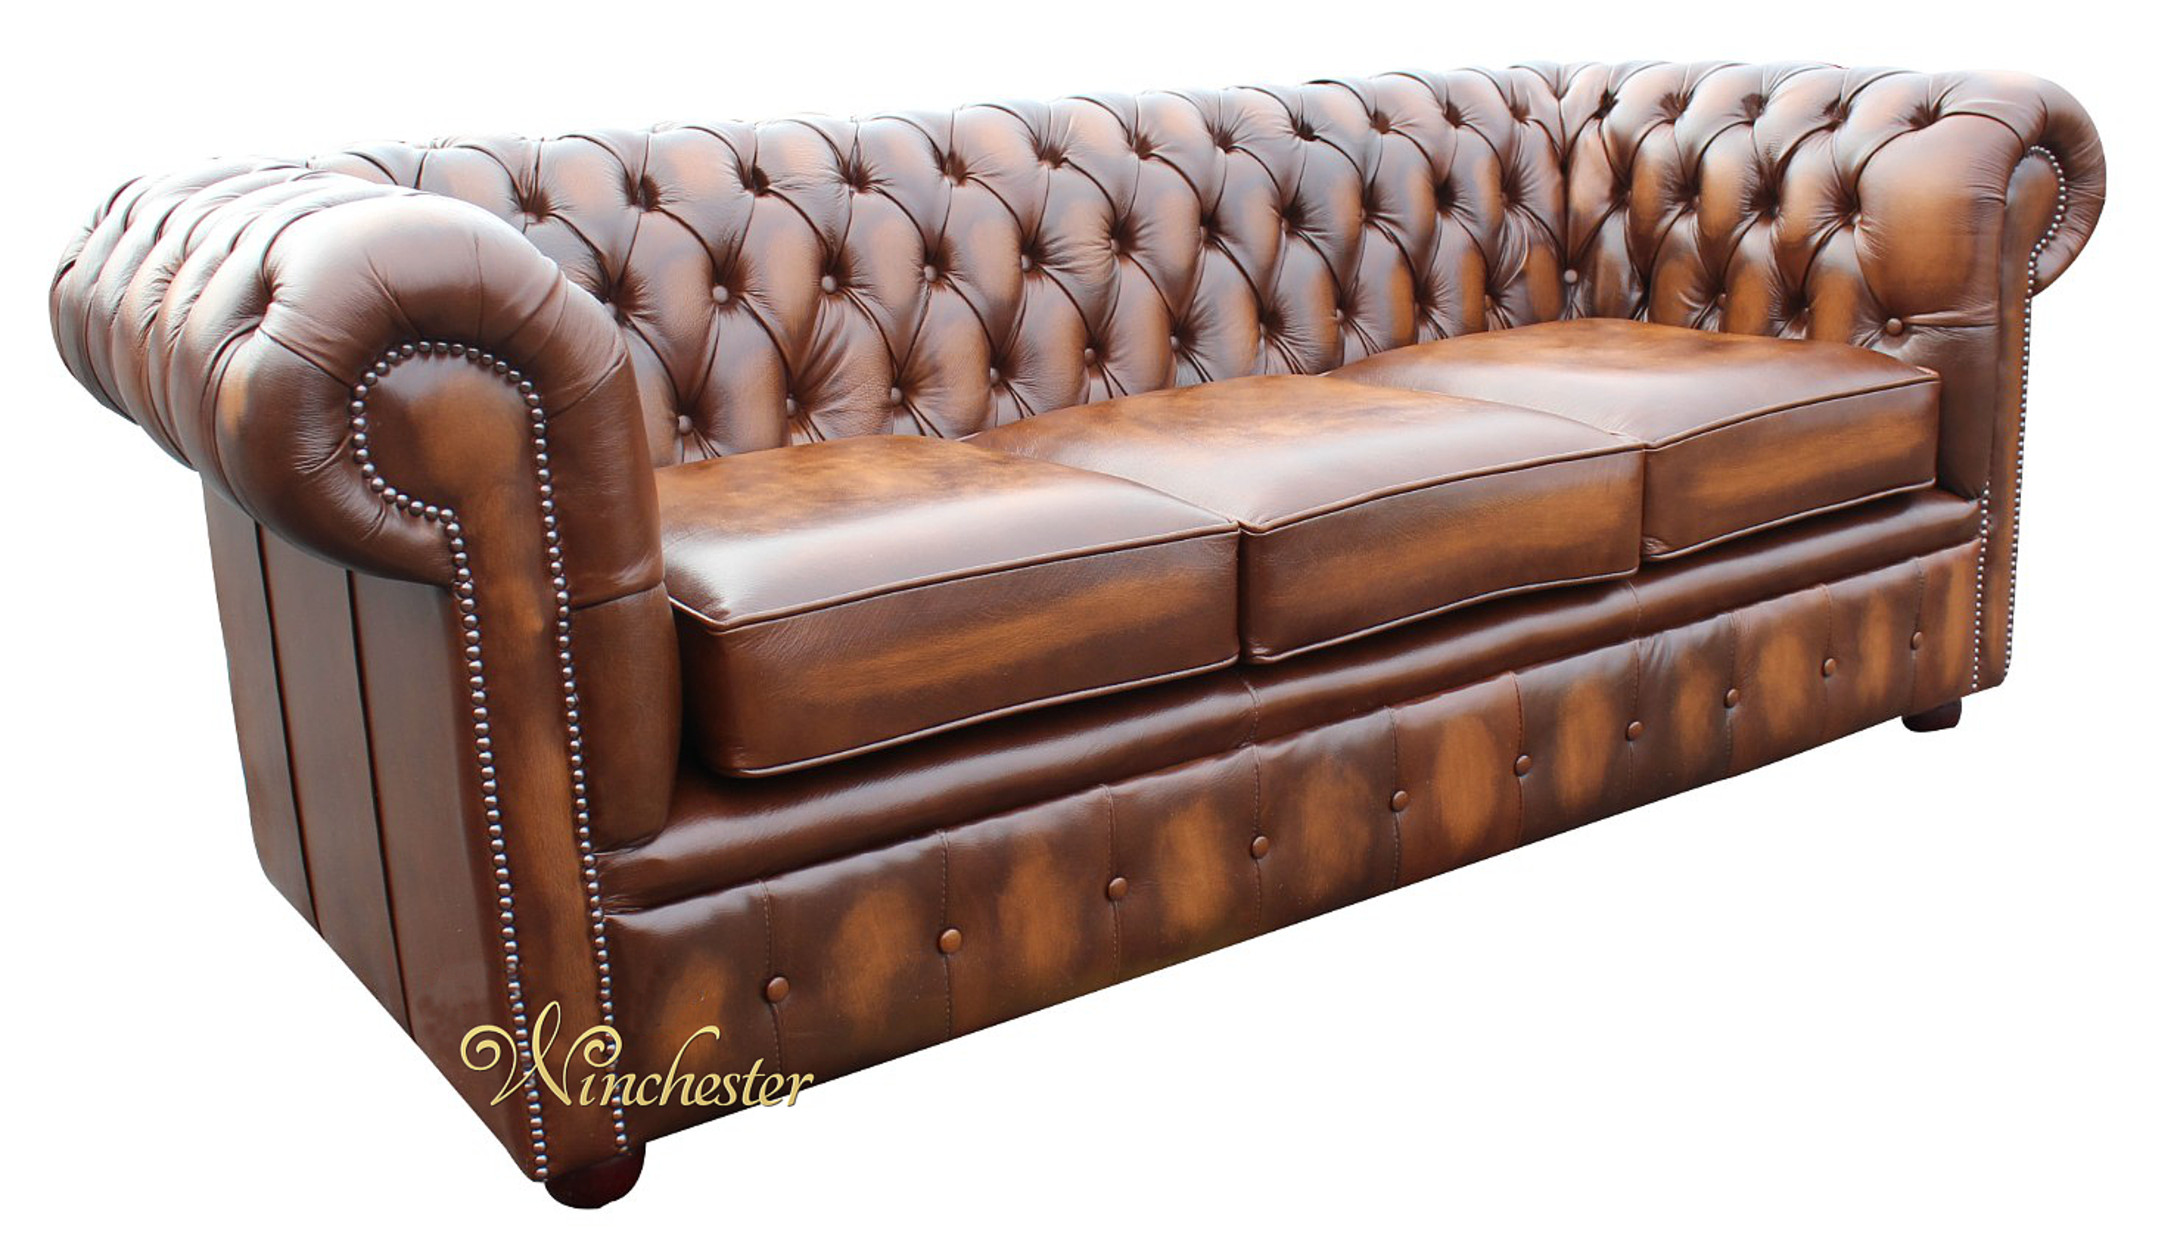 chesterfield london 3 seater antique tan leather sofa settee offer